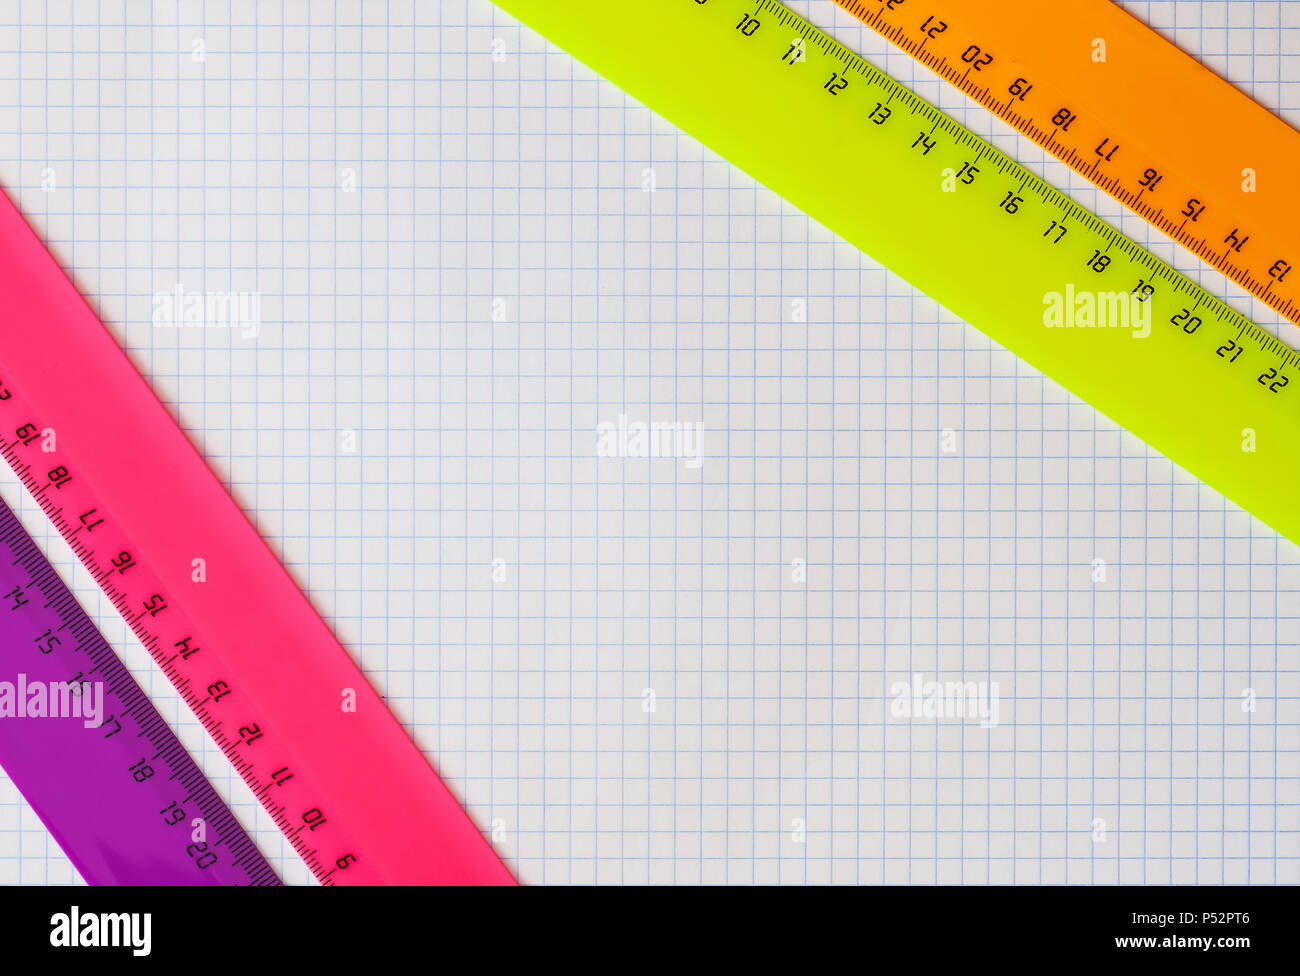 Geometry set with rulers - Stock Image